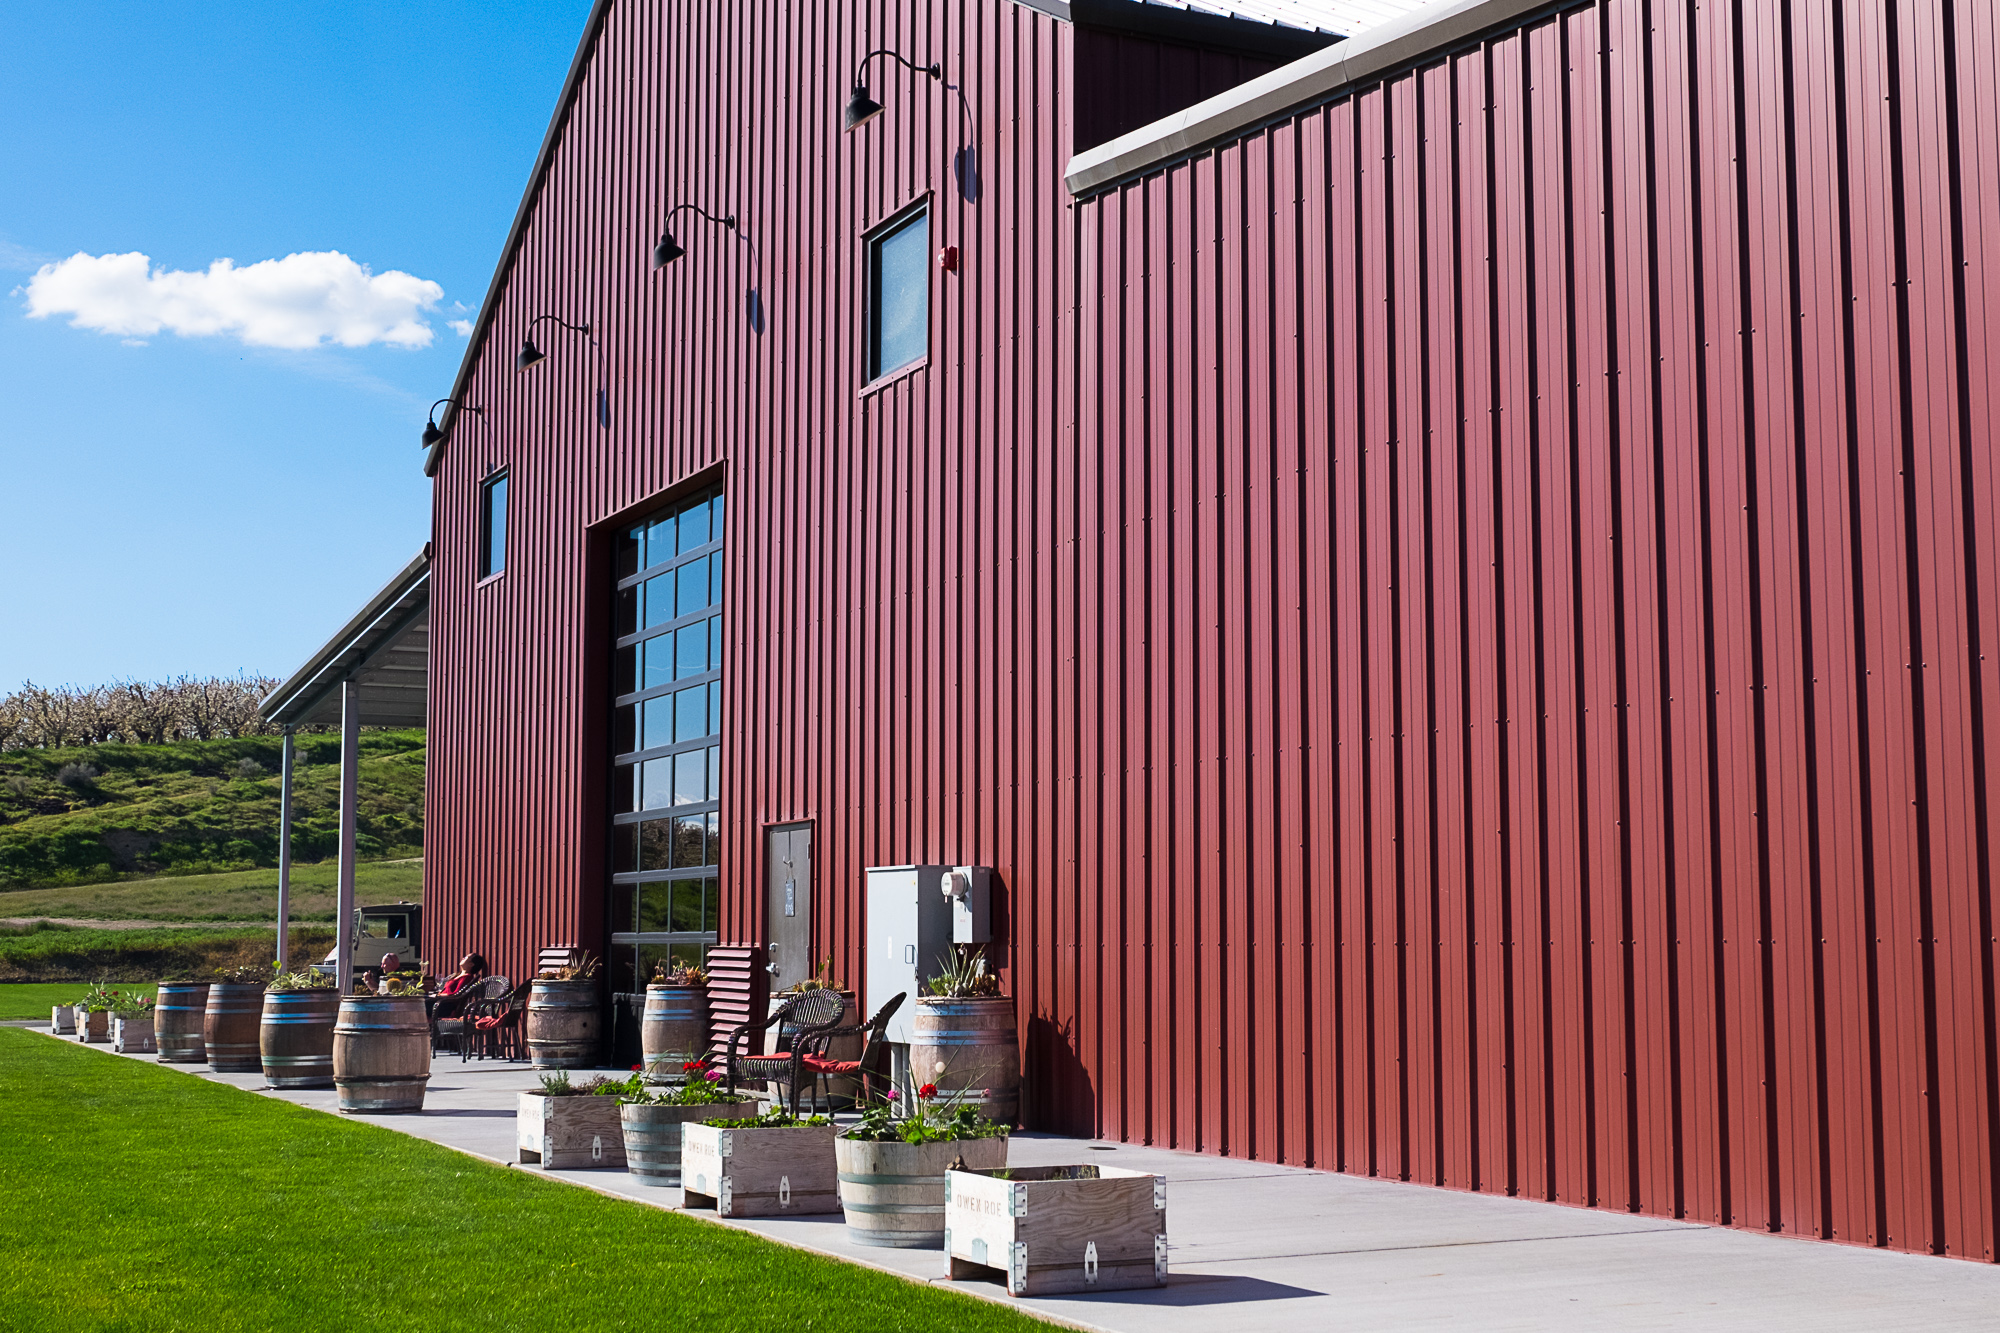 Owen Roe Winery (Image: Paola Thomas/Seattle Refined)